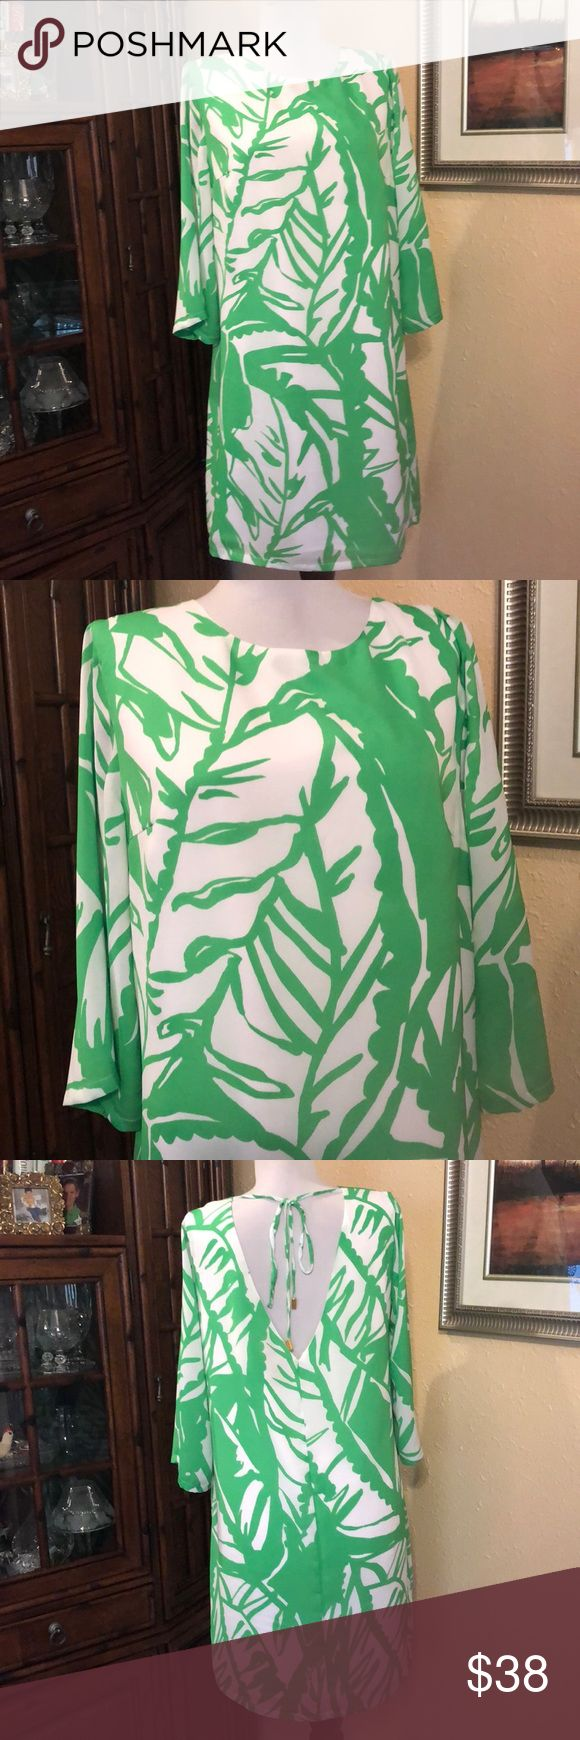 Lily Pulitzer's target dress Beautiful elegant v open back excellent condition Lilly Pulitzer for Target Dresses Midi